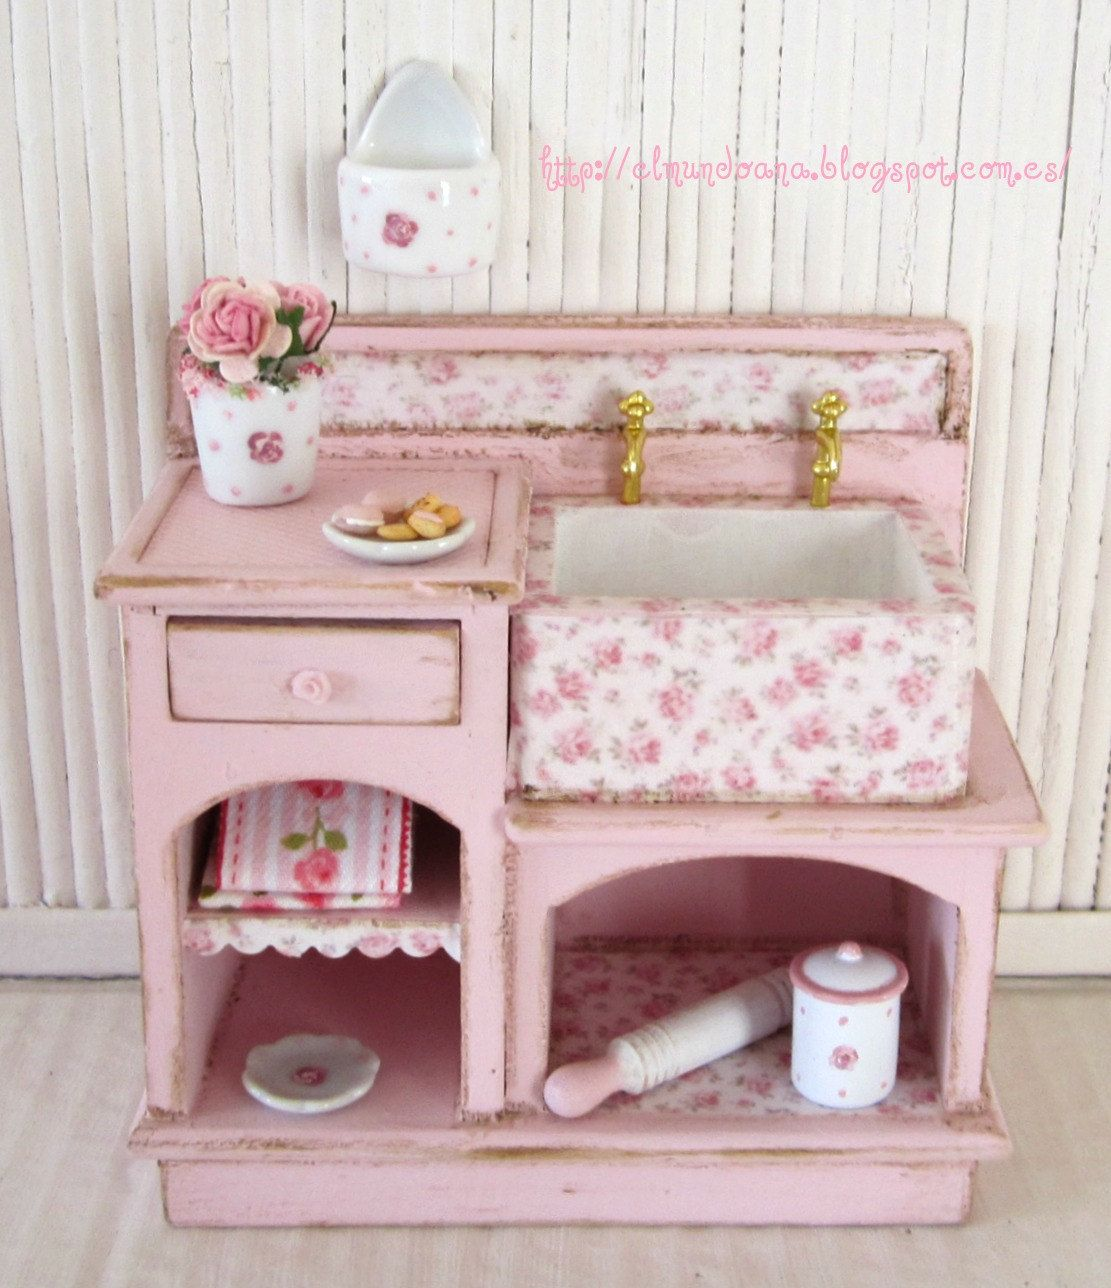 Shabby Chic Furniture Bedroom Shabby Chic Furniture Scale 112 Furniture Shabby Chic And Sinks